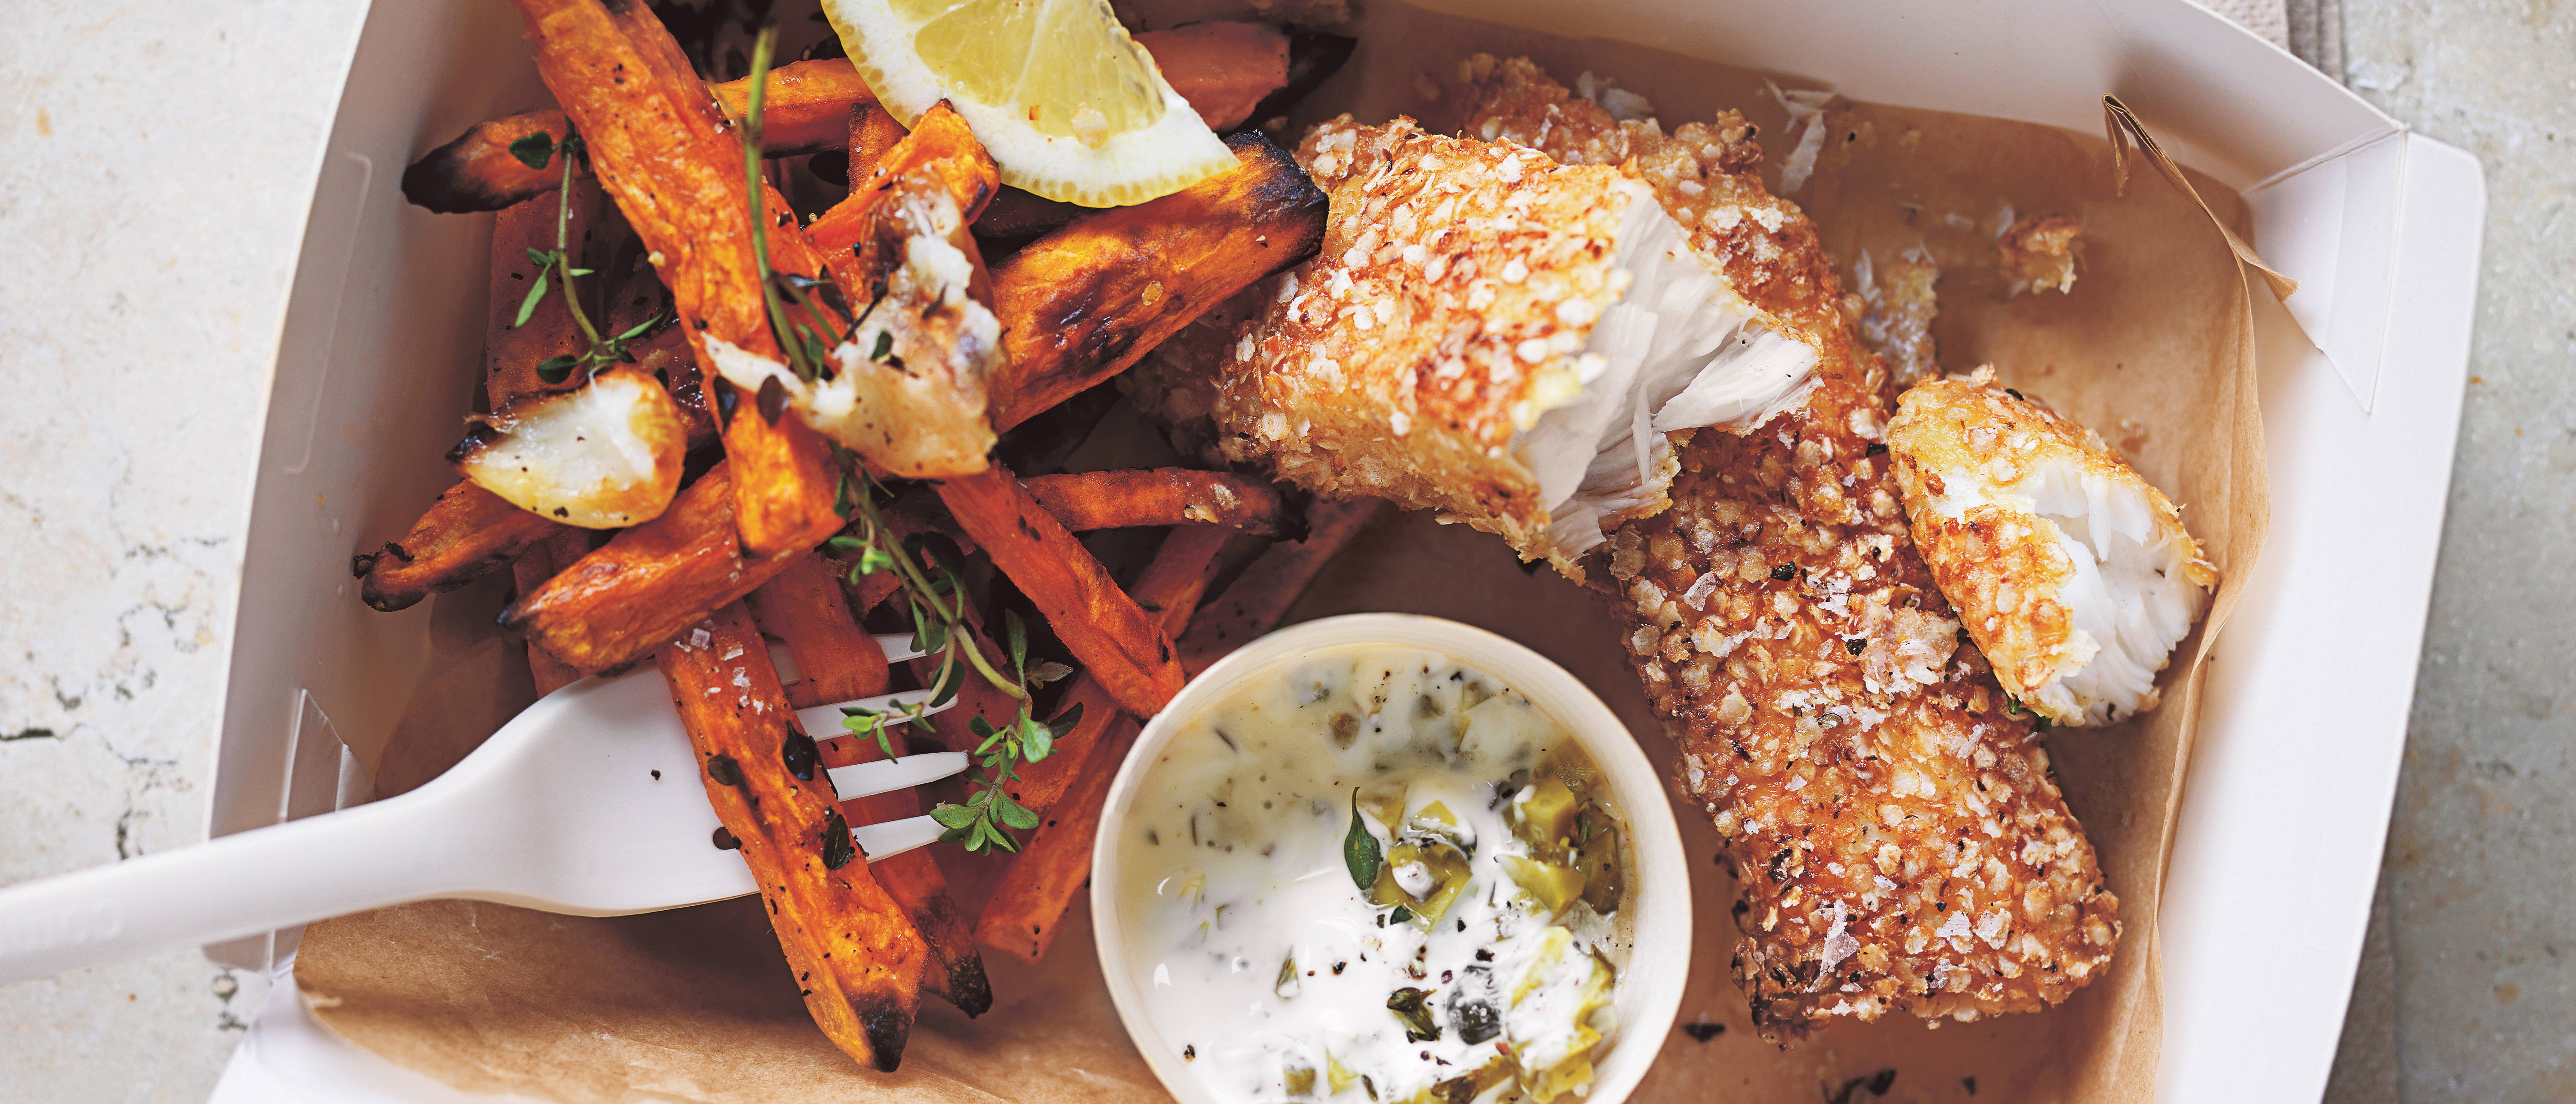 Recipe: Donna Hay's quinoa-crusted fish with sweet potato chips and yoghurt tartare